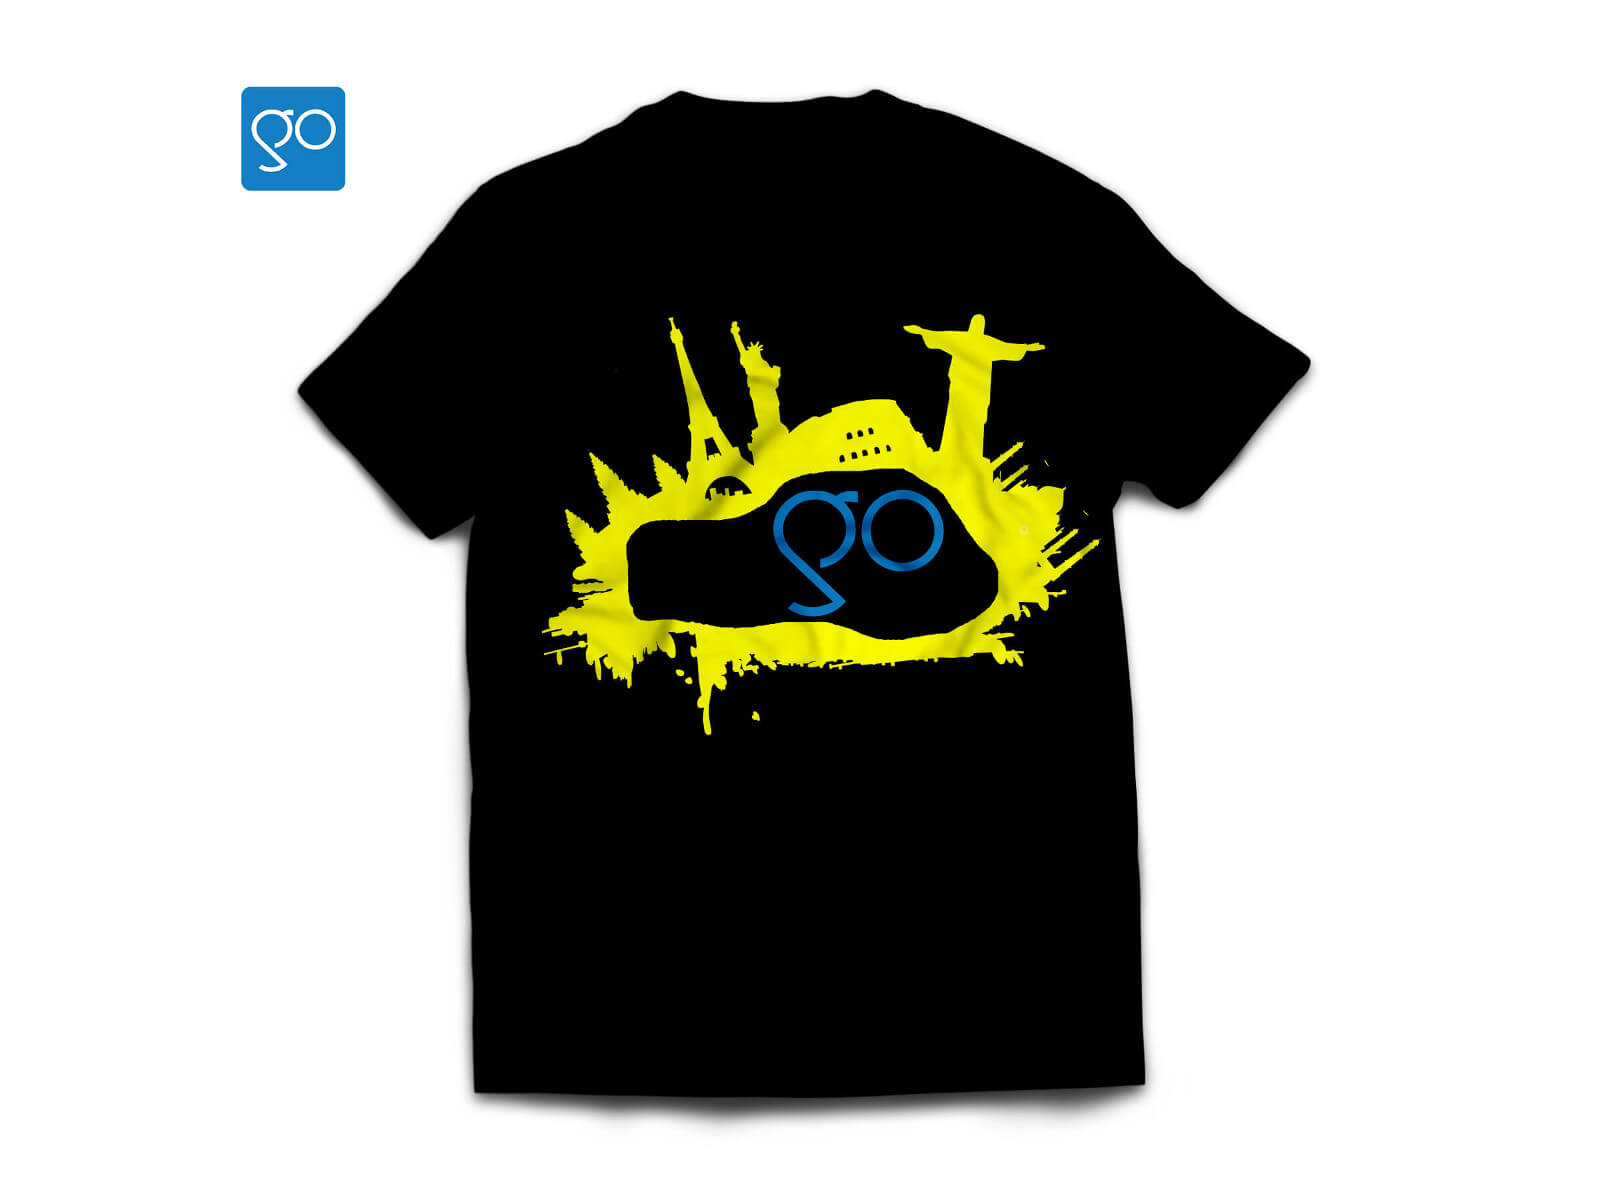 GoUNESCO-tshirt-Black-and-yellow